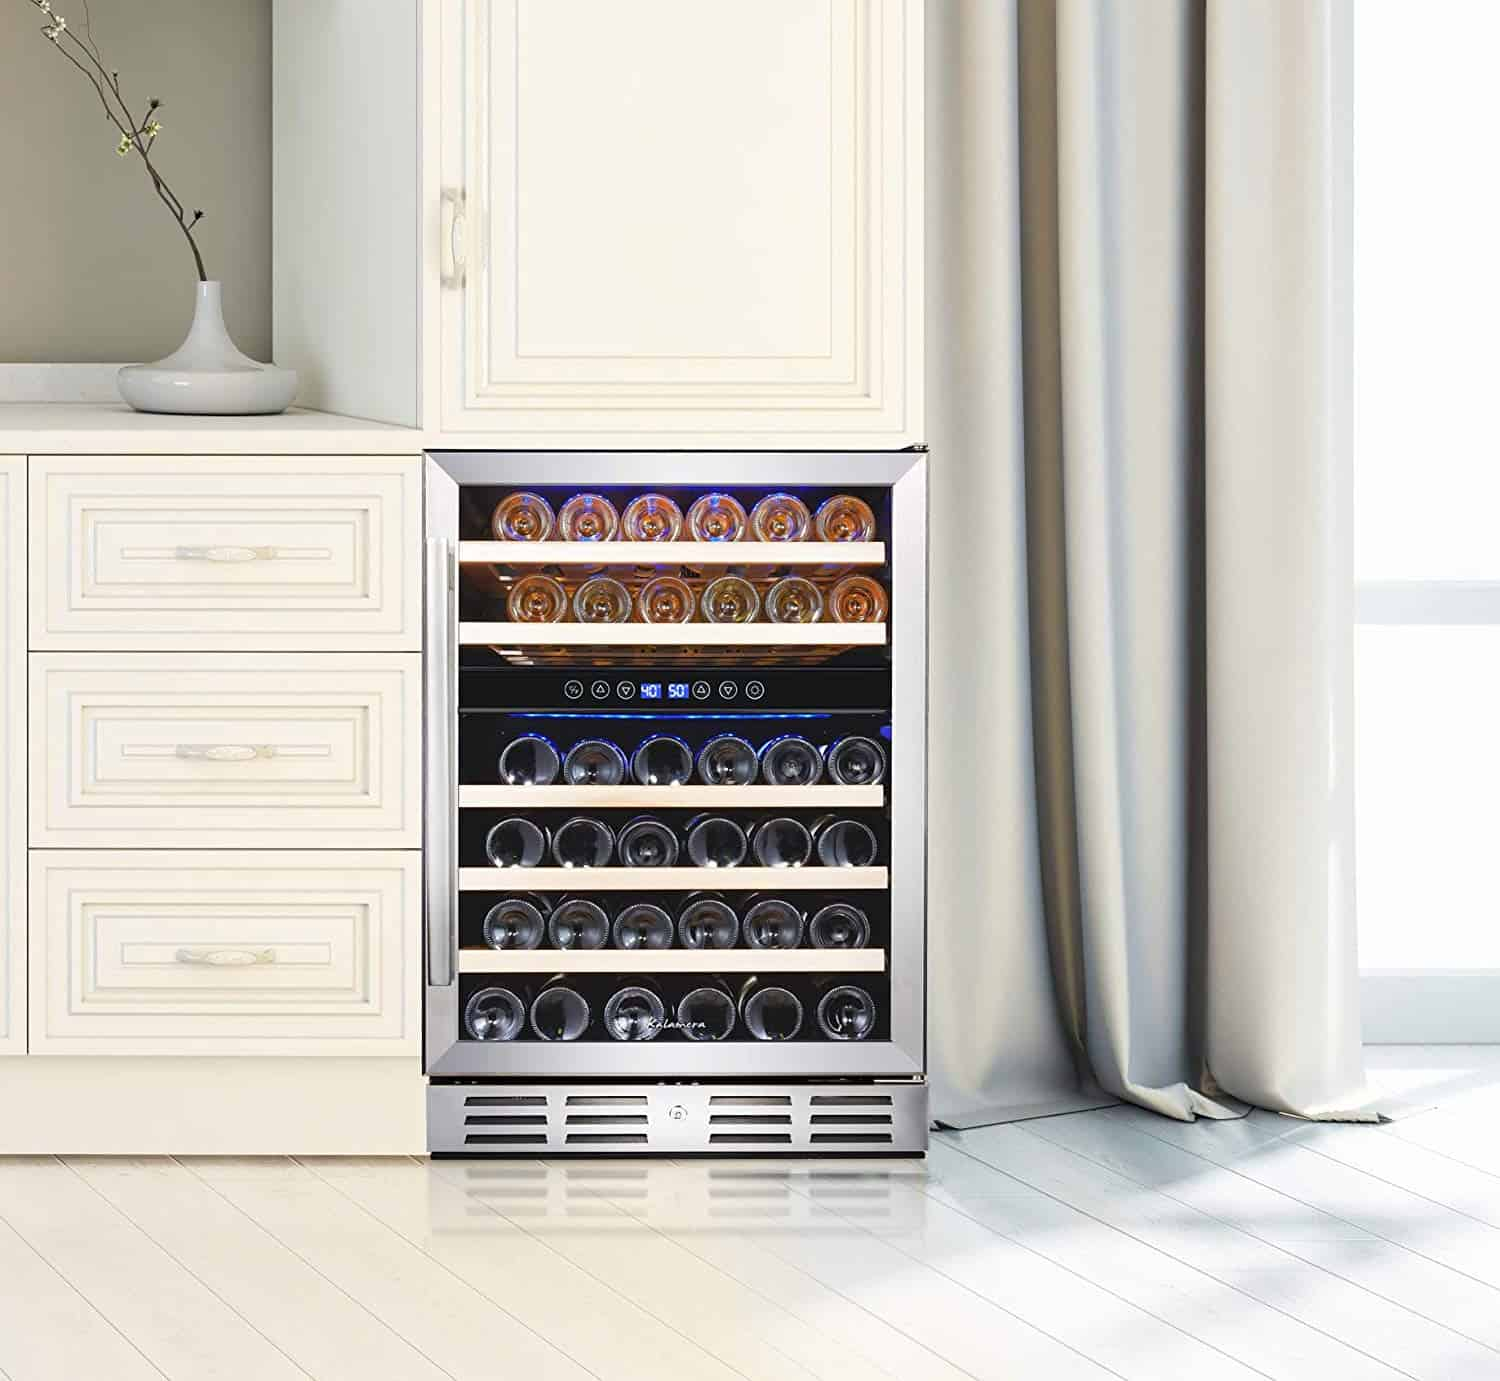 Kalamera 24 Inch Wine Cooler Review1